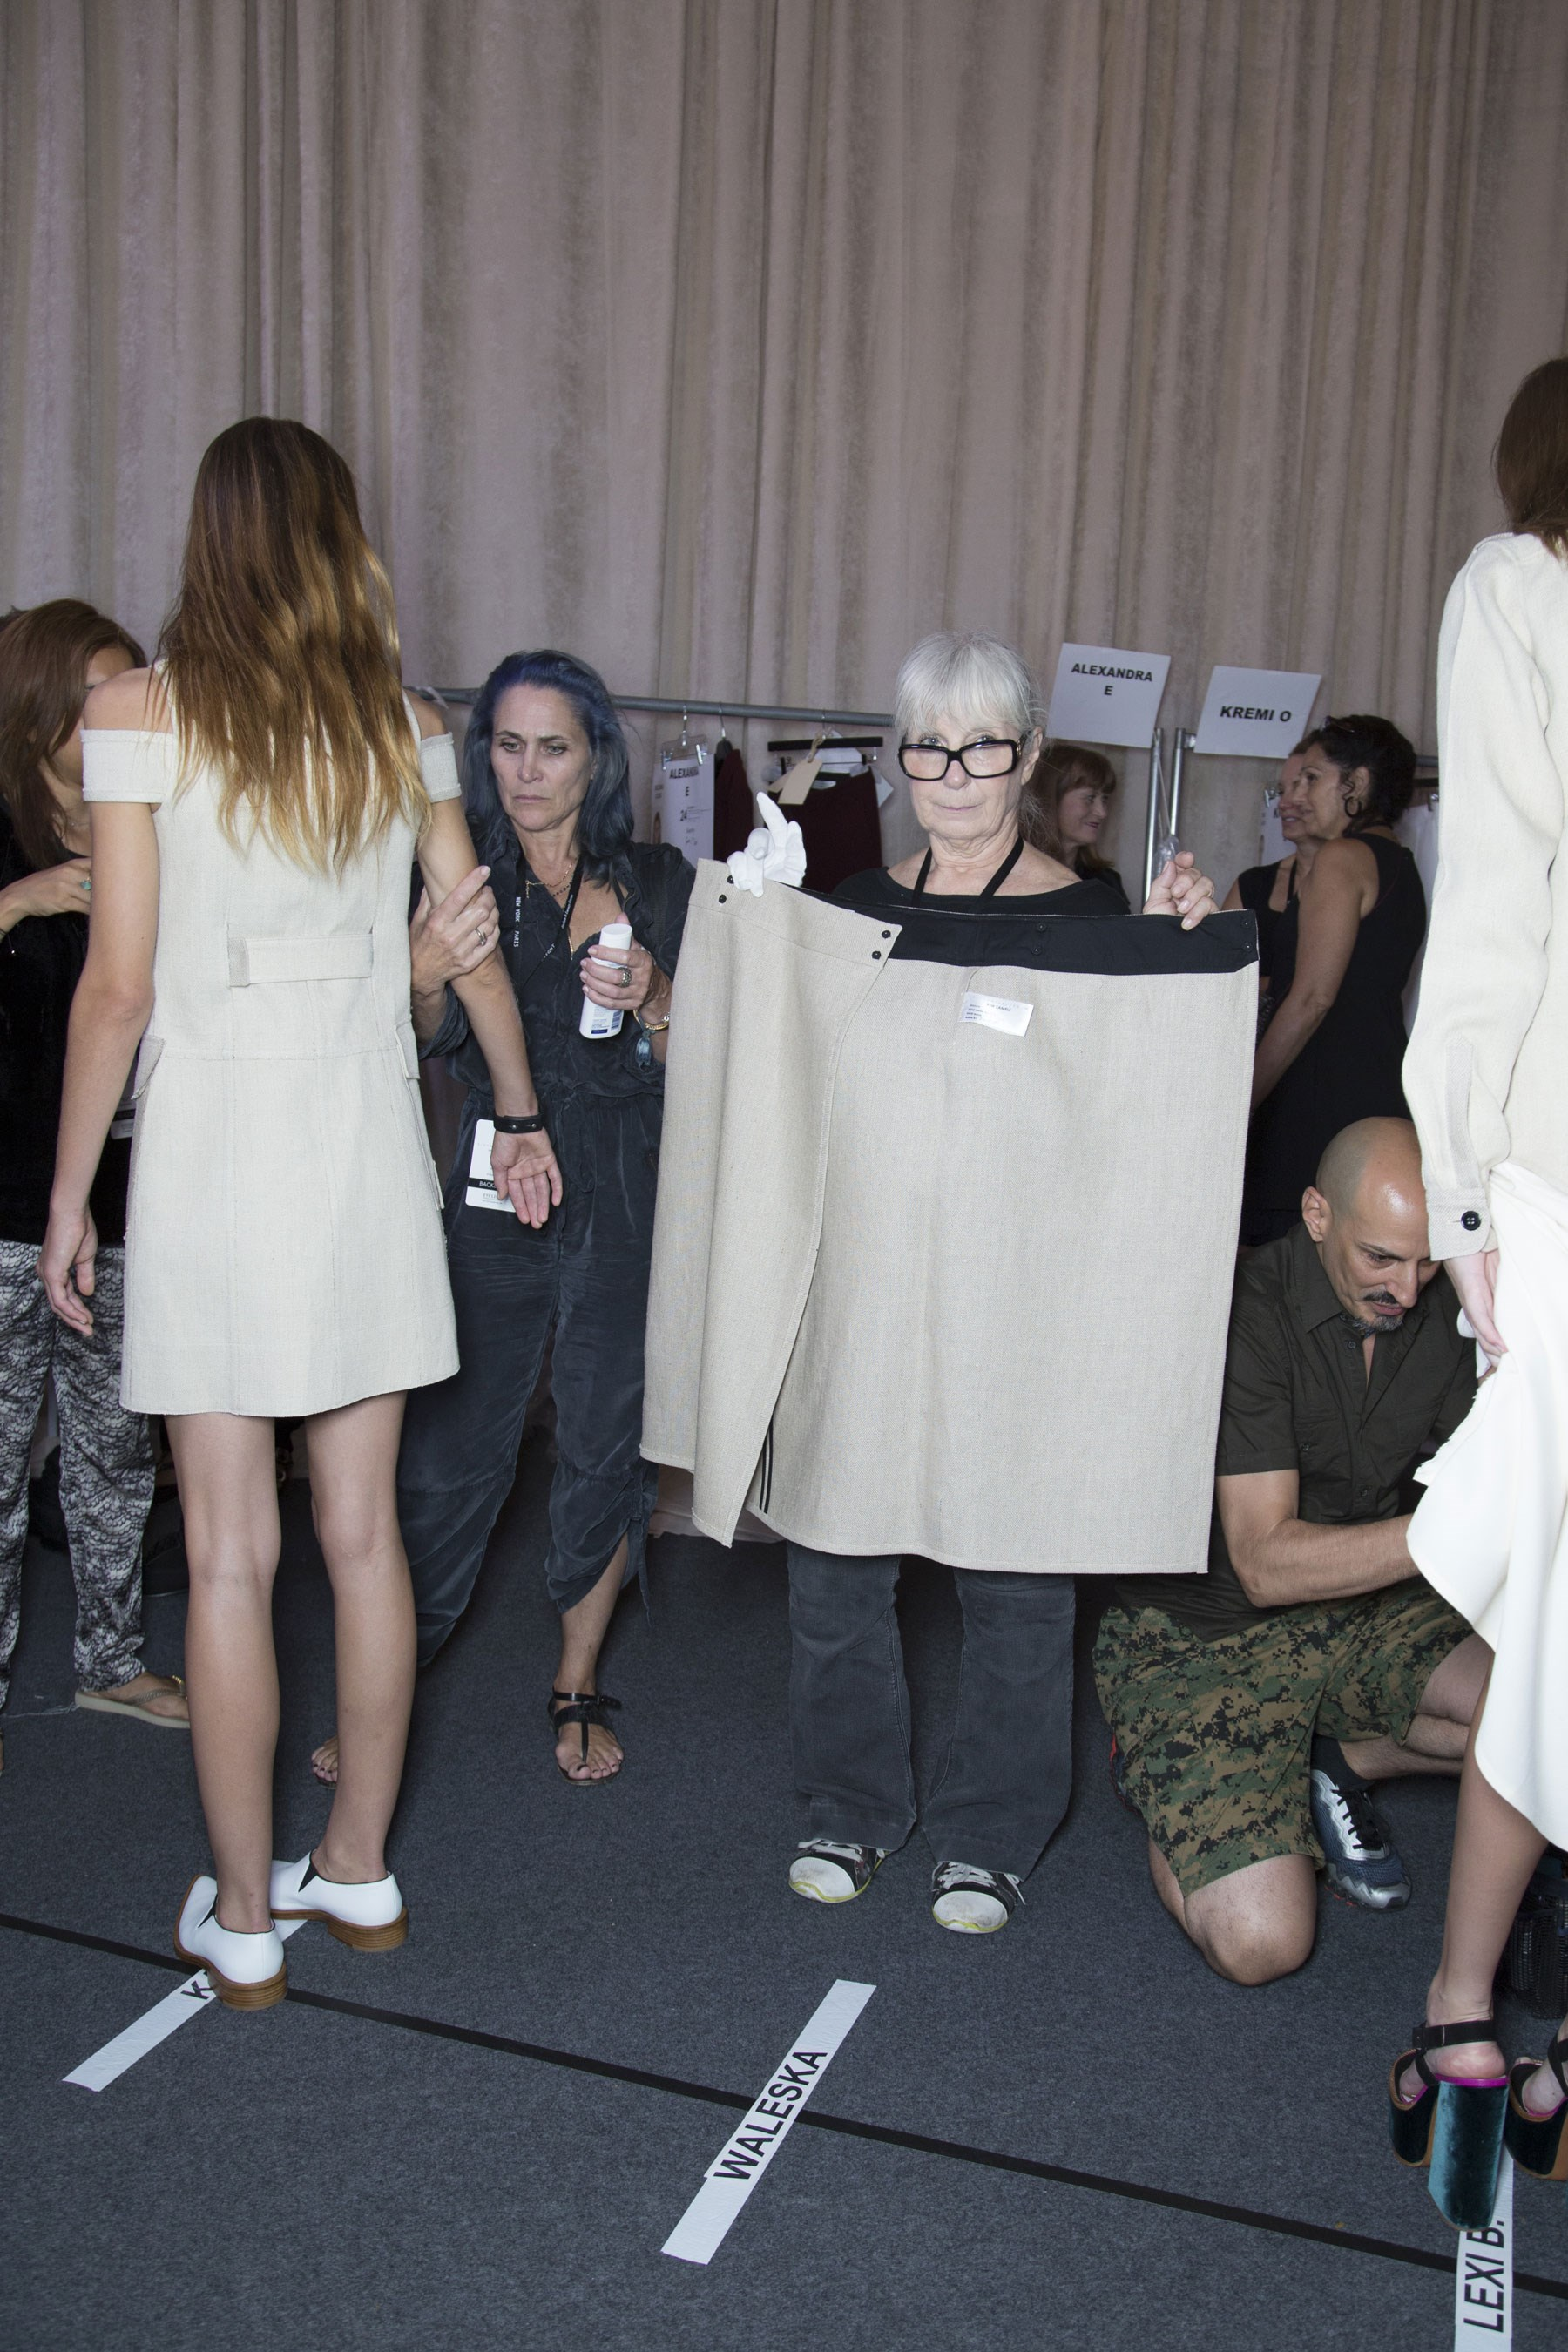 Backstage dressing area at Victoria Beckham's show.